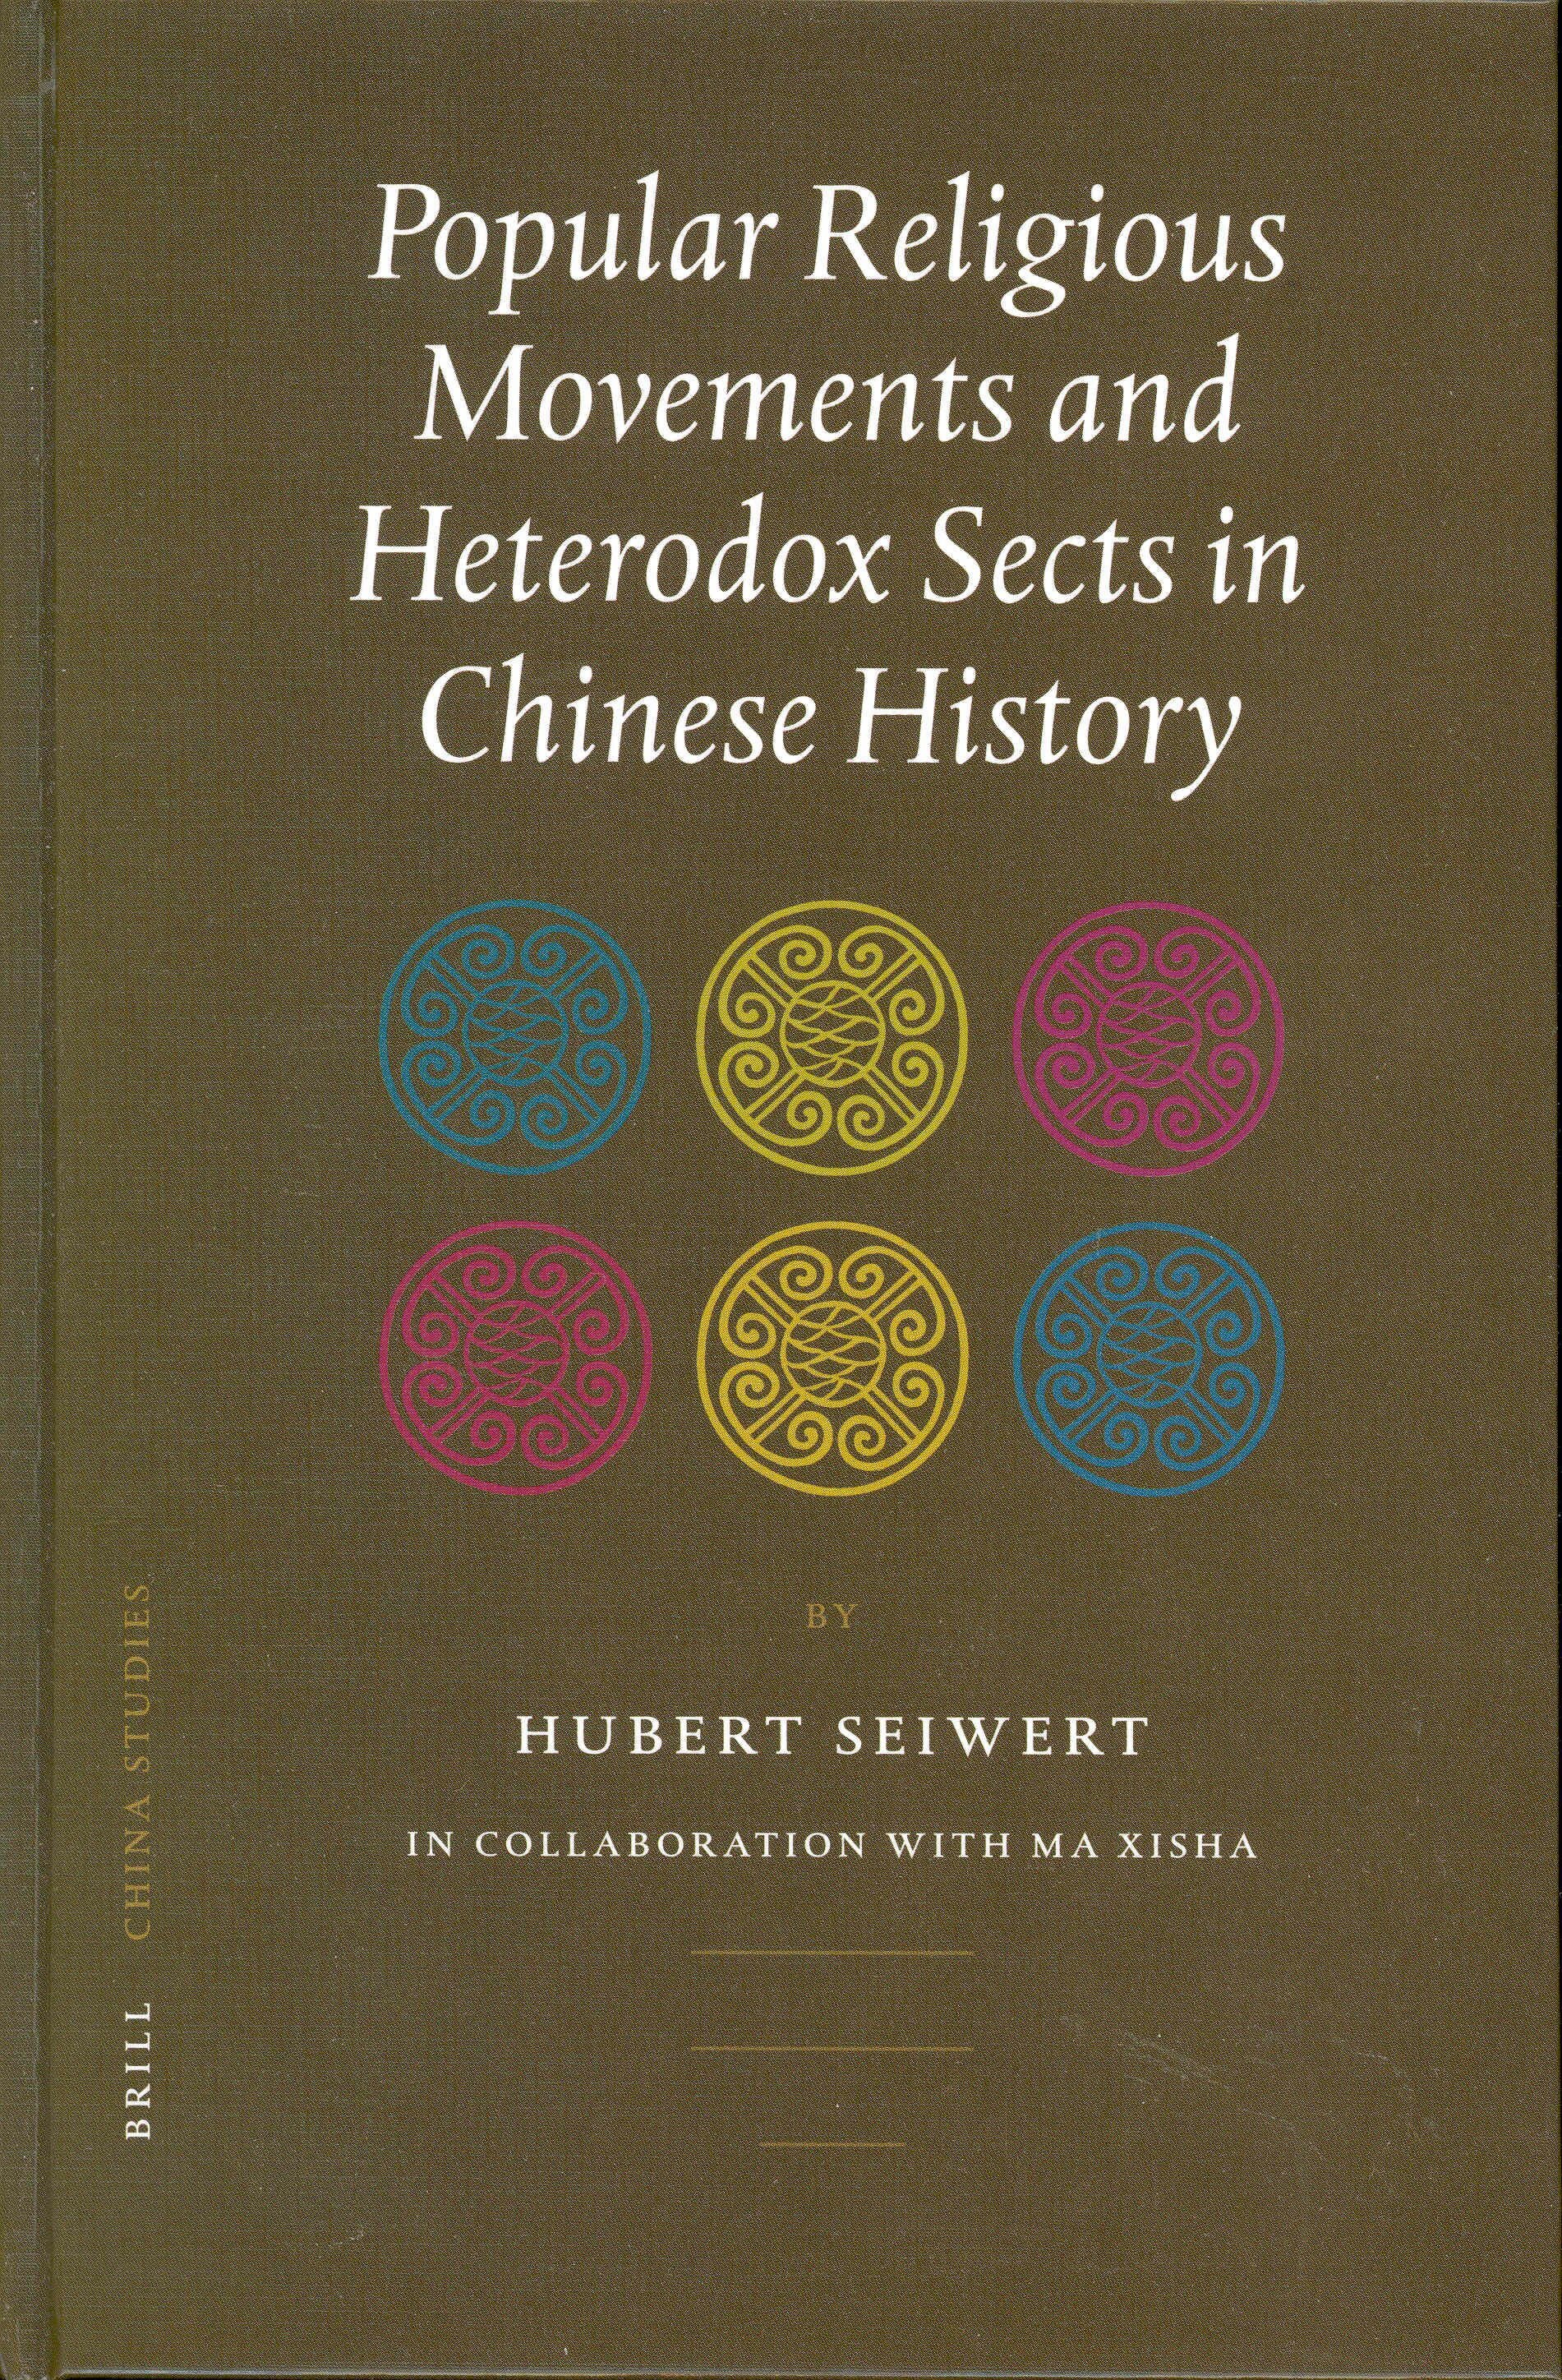 Popular Religious Movements and Heterodox Sects in Chinese History (China Studies, 3)